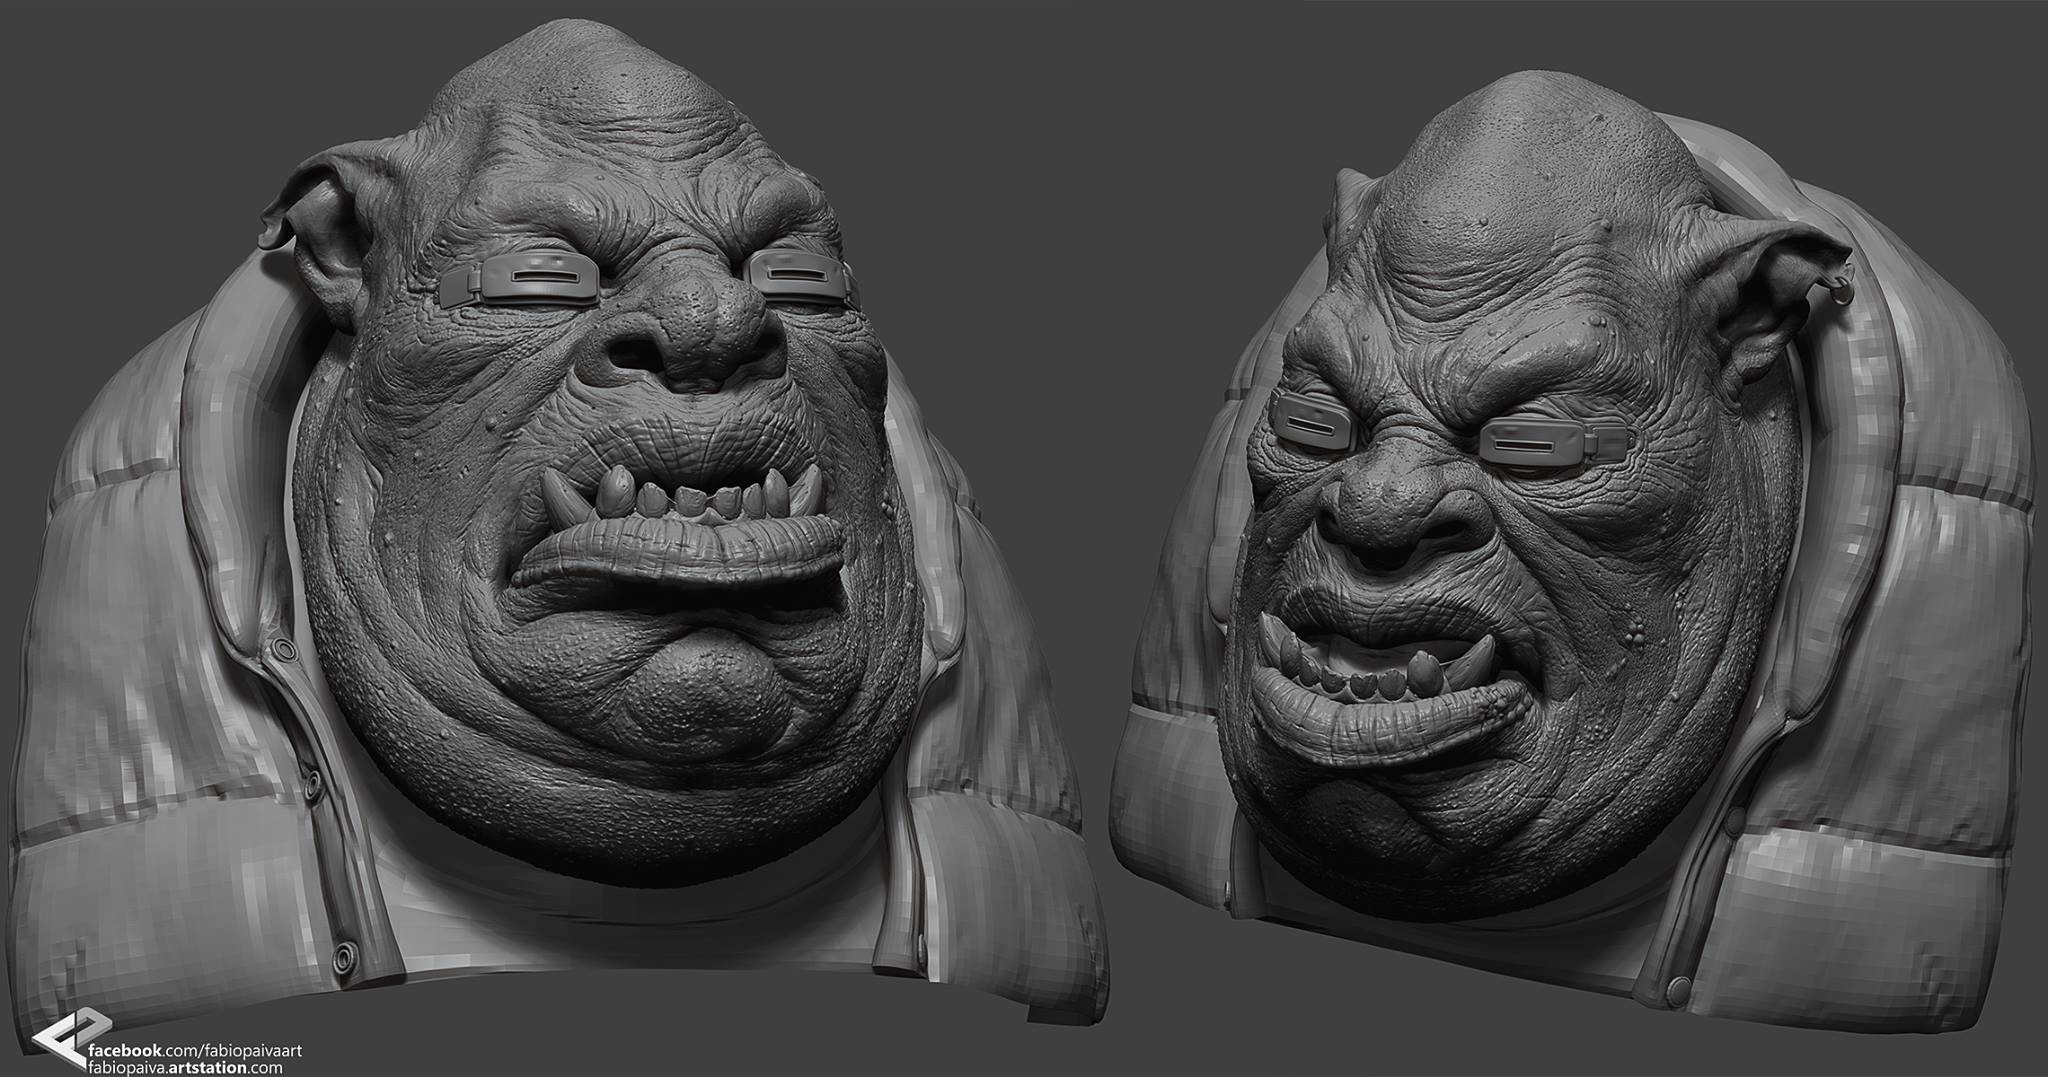 zbrush - basemesh provided by  the instructor